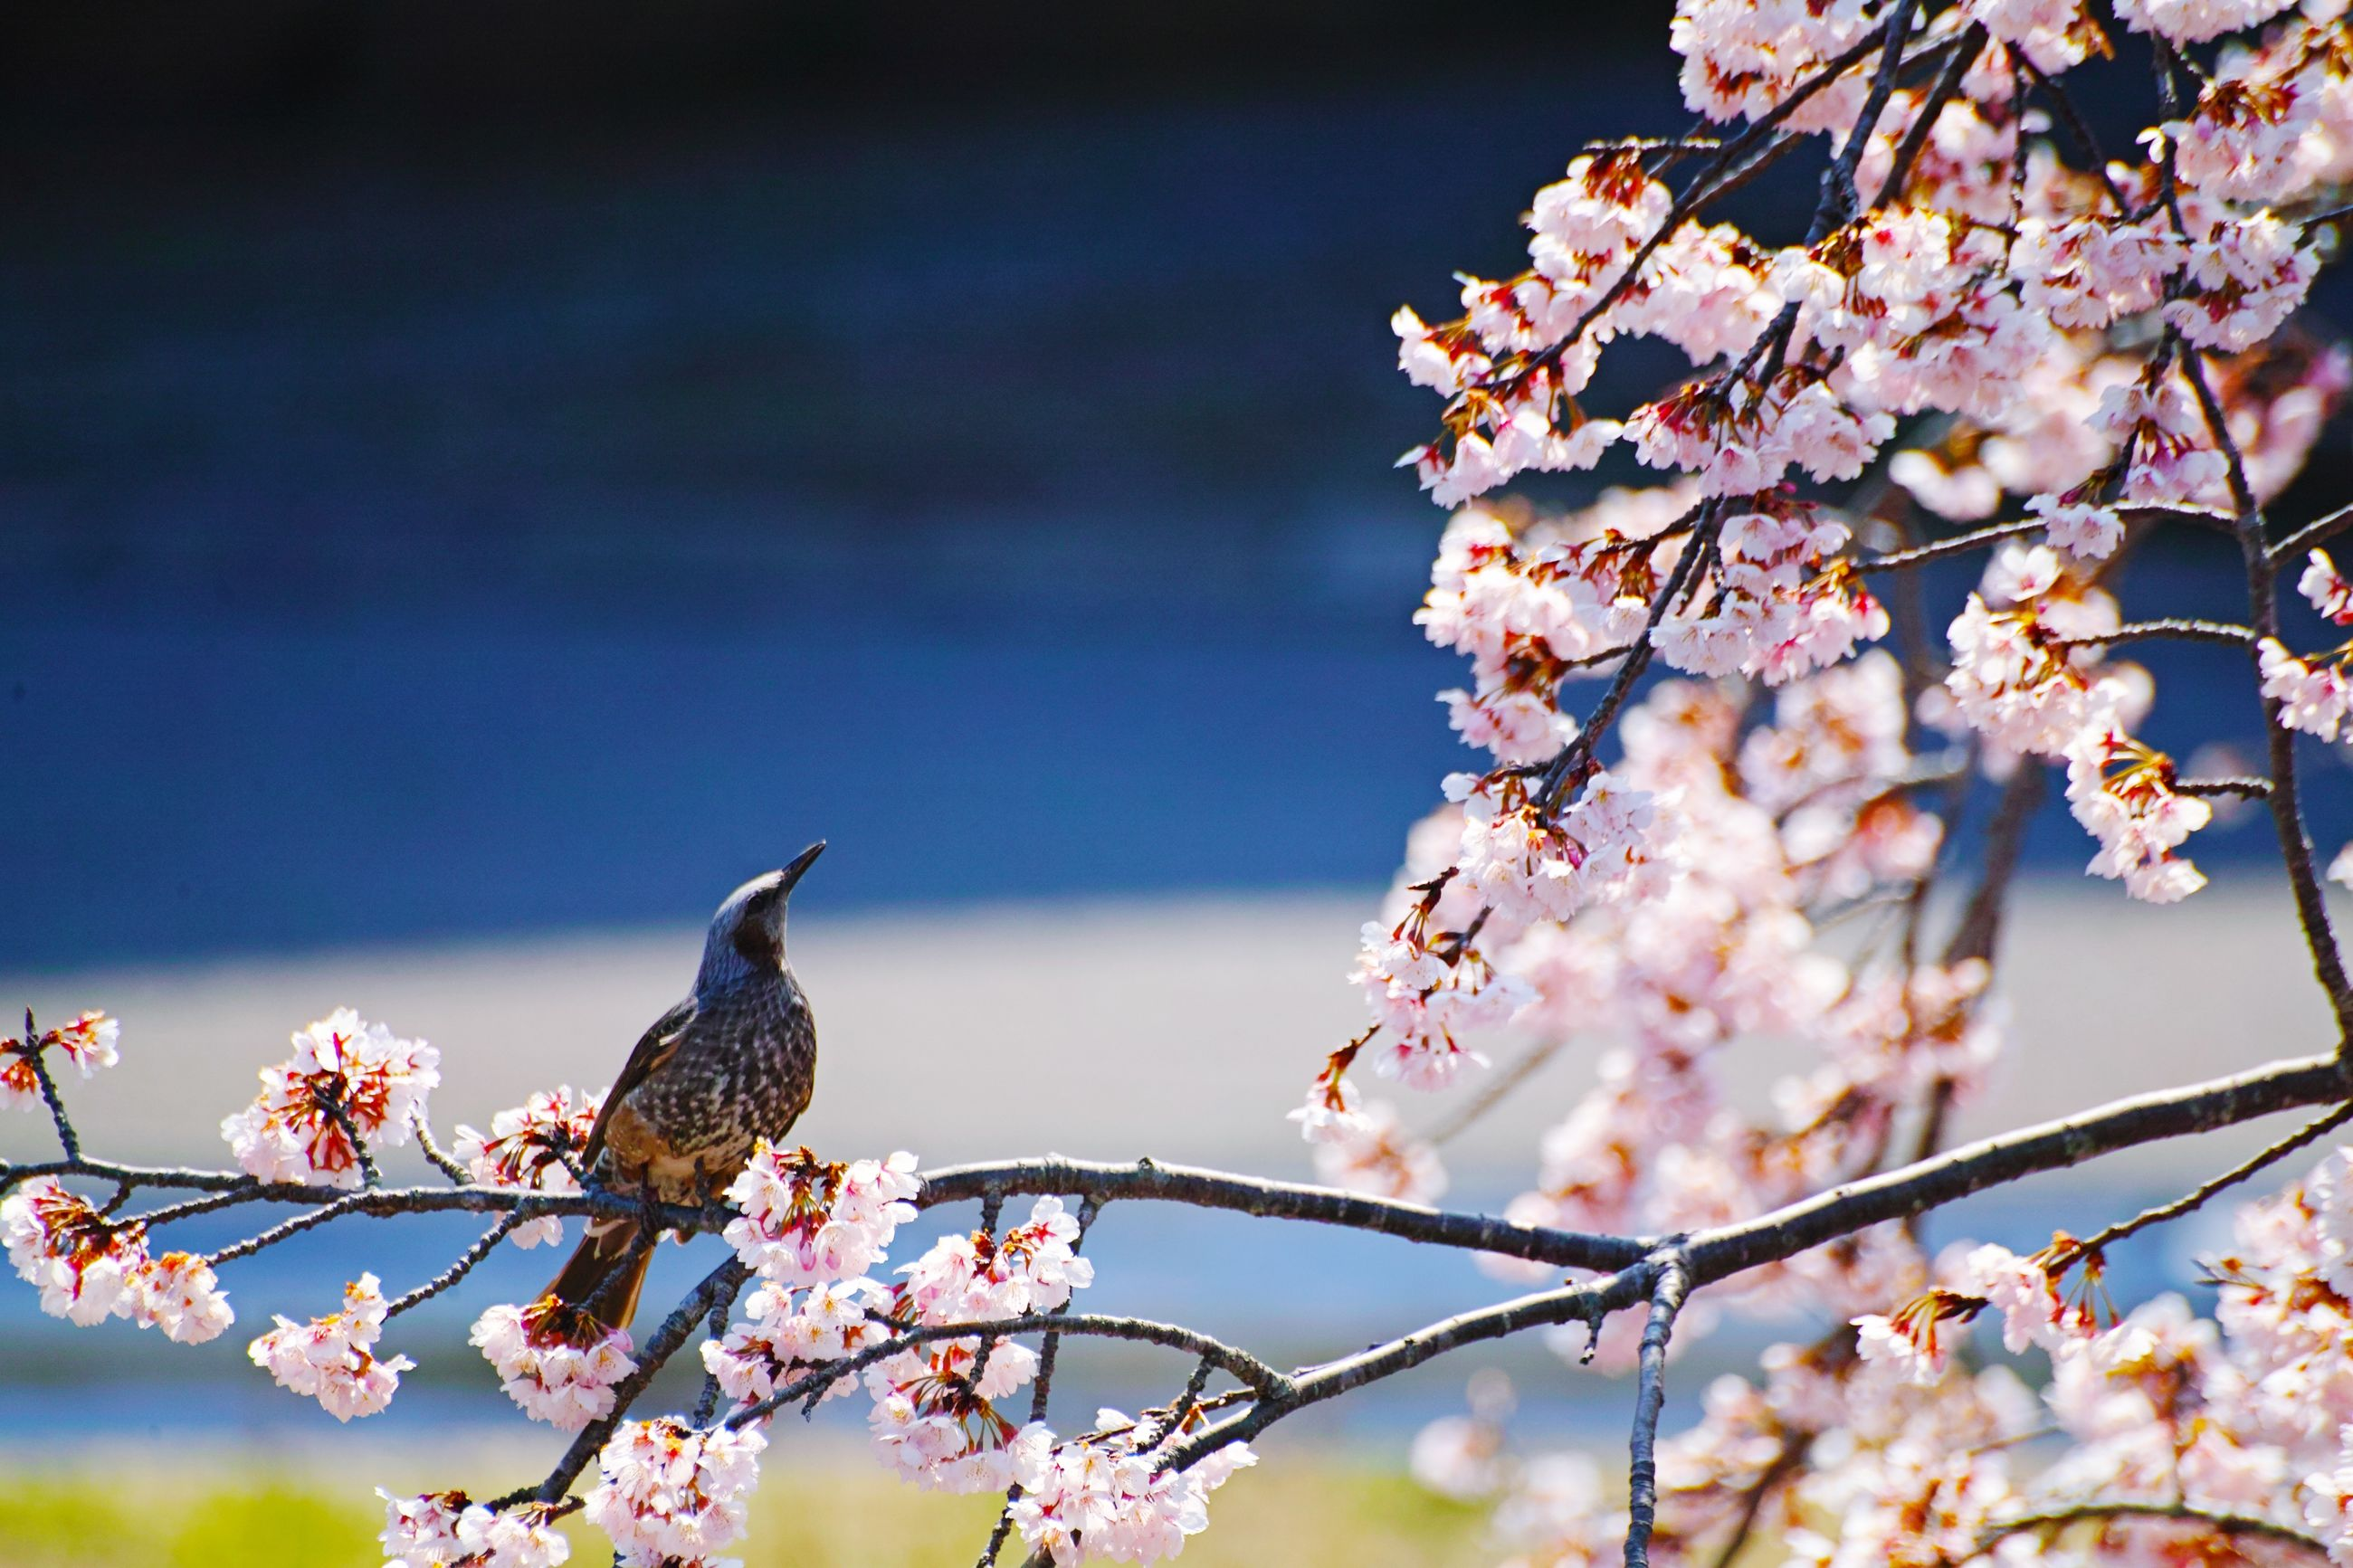 bird, animal themes, vertebrate, animal, animal wildlife, animals in the wild, flower, plant, flowering plant, fragility, one animal, perching, beauty in nature, freshness, branch, vulnerability, nature, tree, day, growth, springtime, cherry blossom, no people, pink color, outdoors, cherry tree, flower head